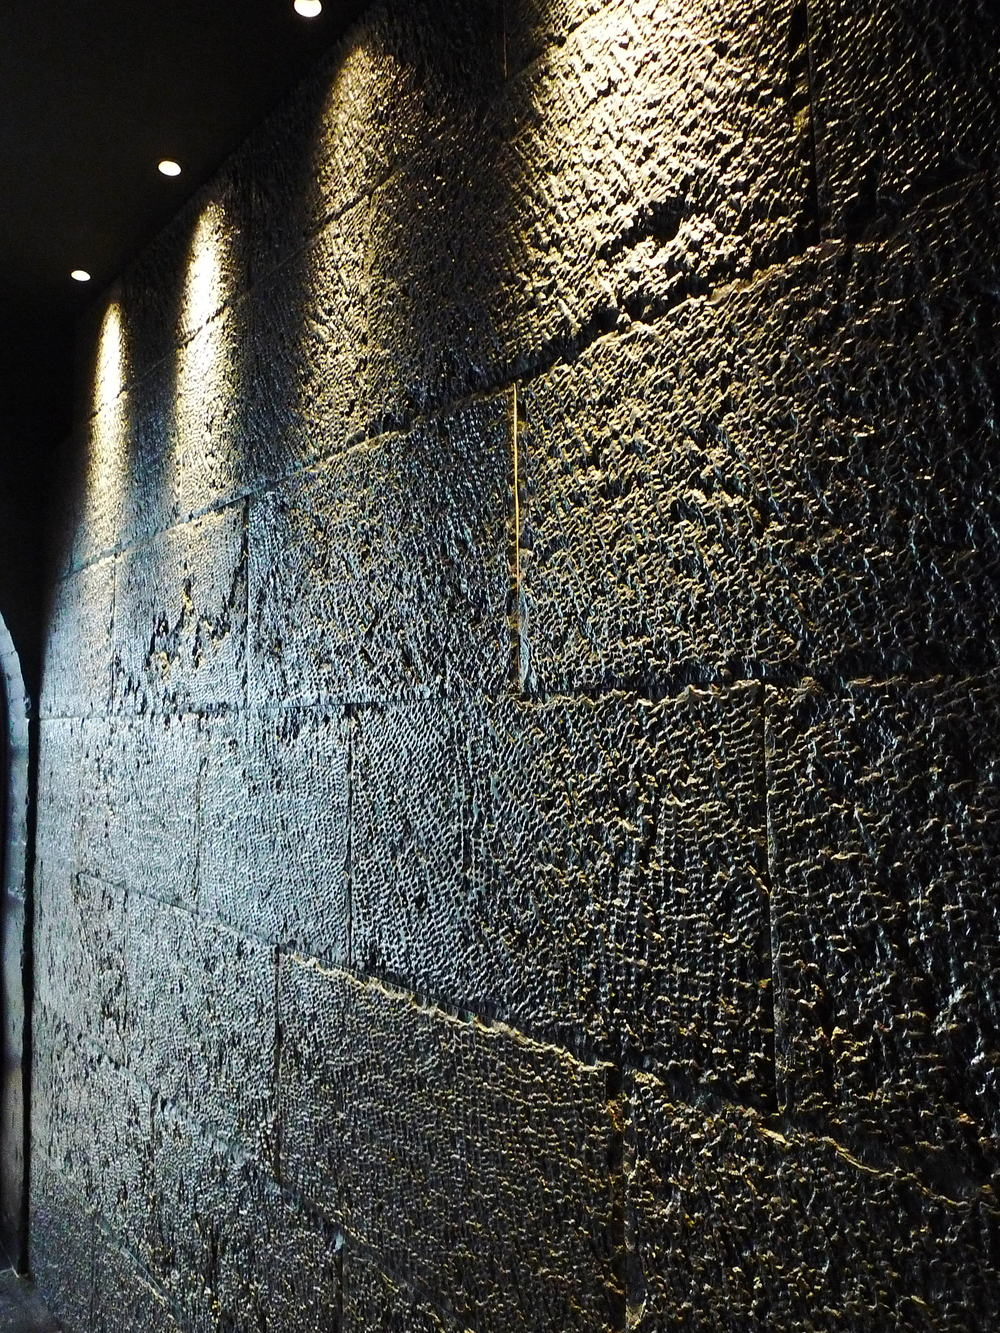 Wall grazing accomplished to stunning effect at the Lapicida showroom in London. Lighting design by Sally Storey.